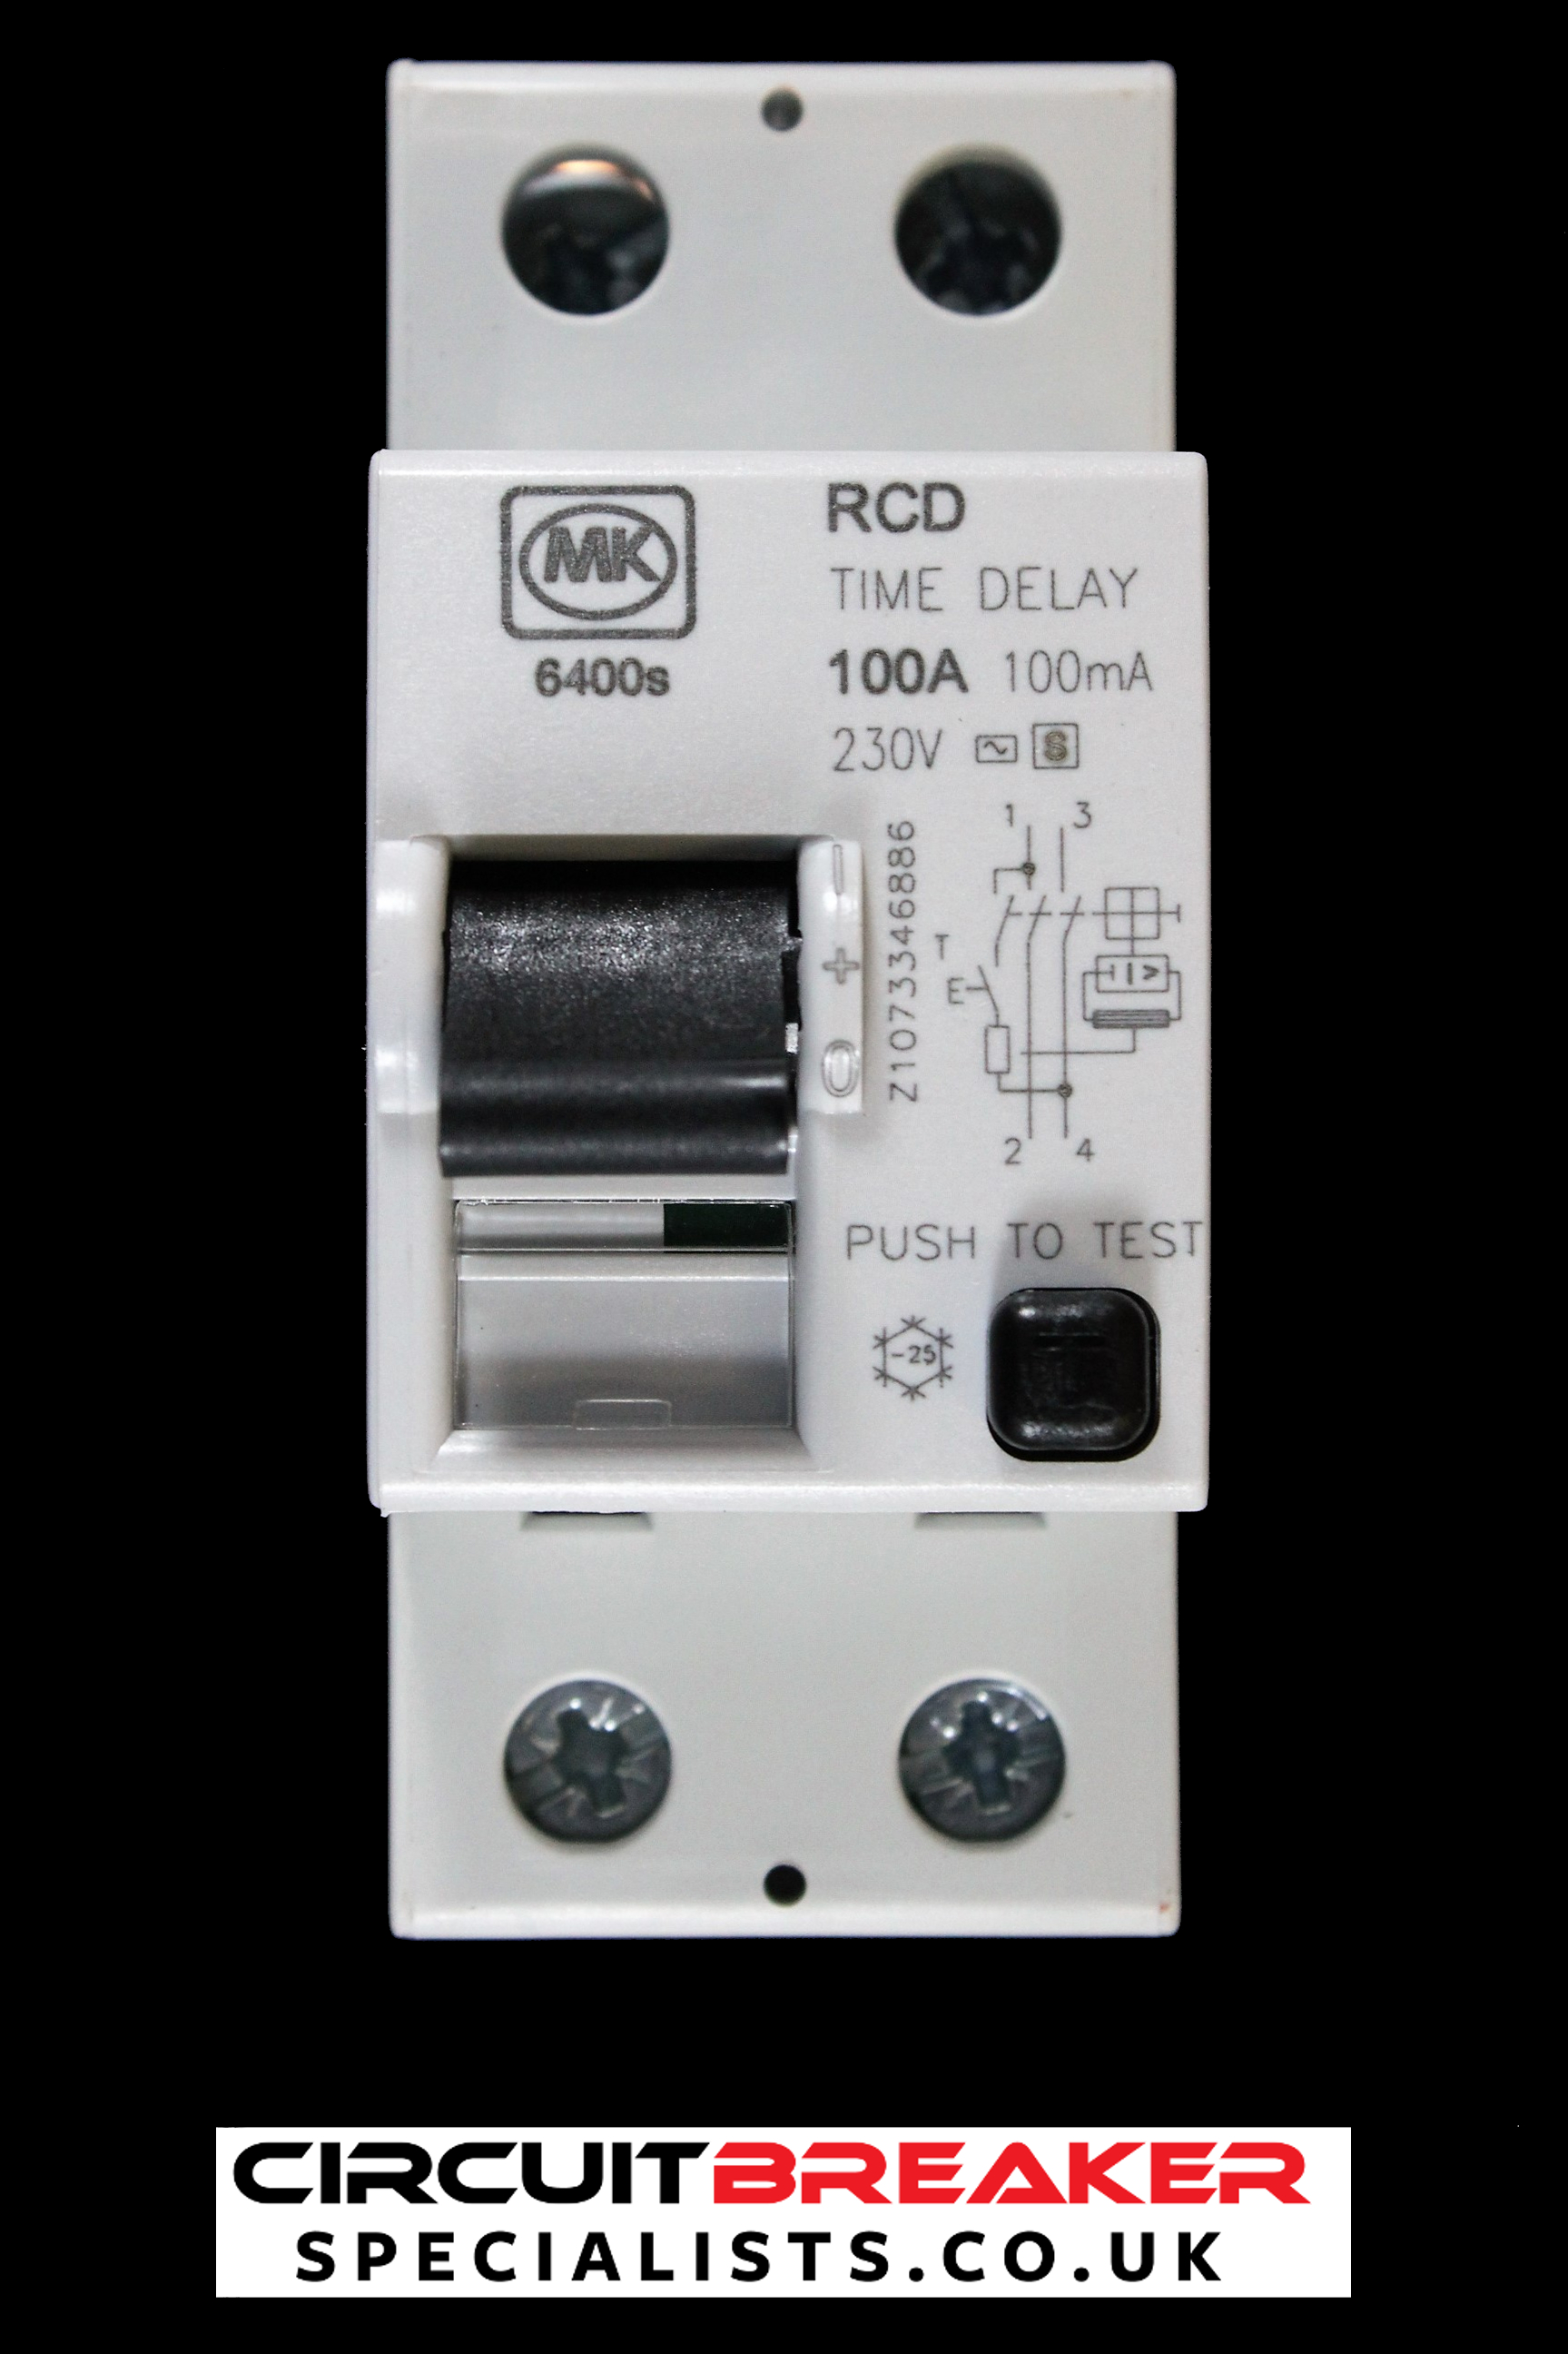 MK 100 AMP 100 mA DOUBLE POLE TIME DELAY RCD 6400S SENTRY